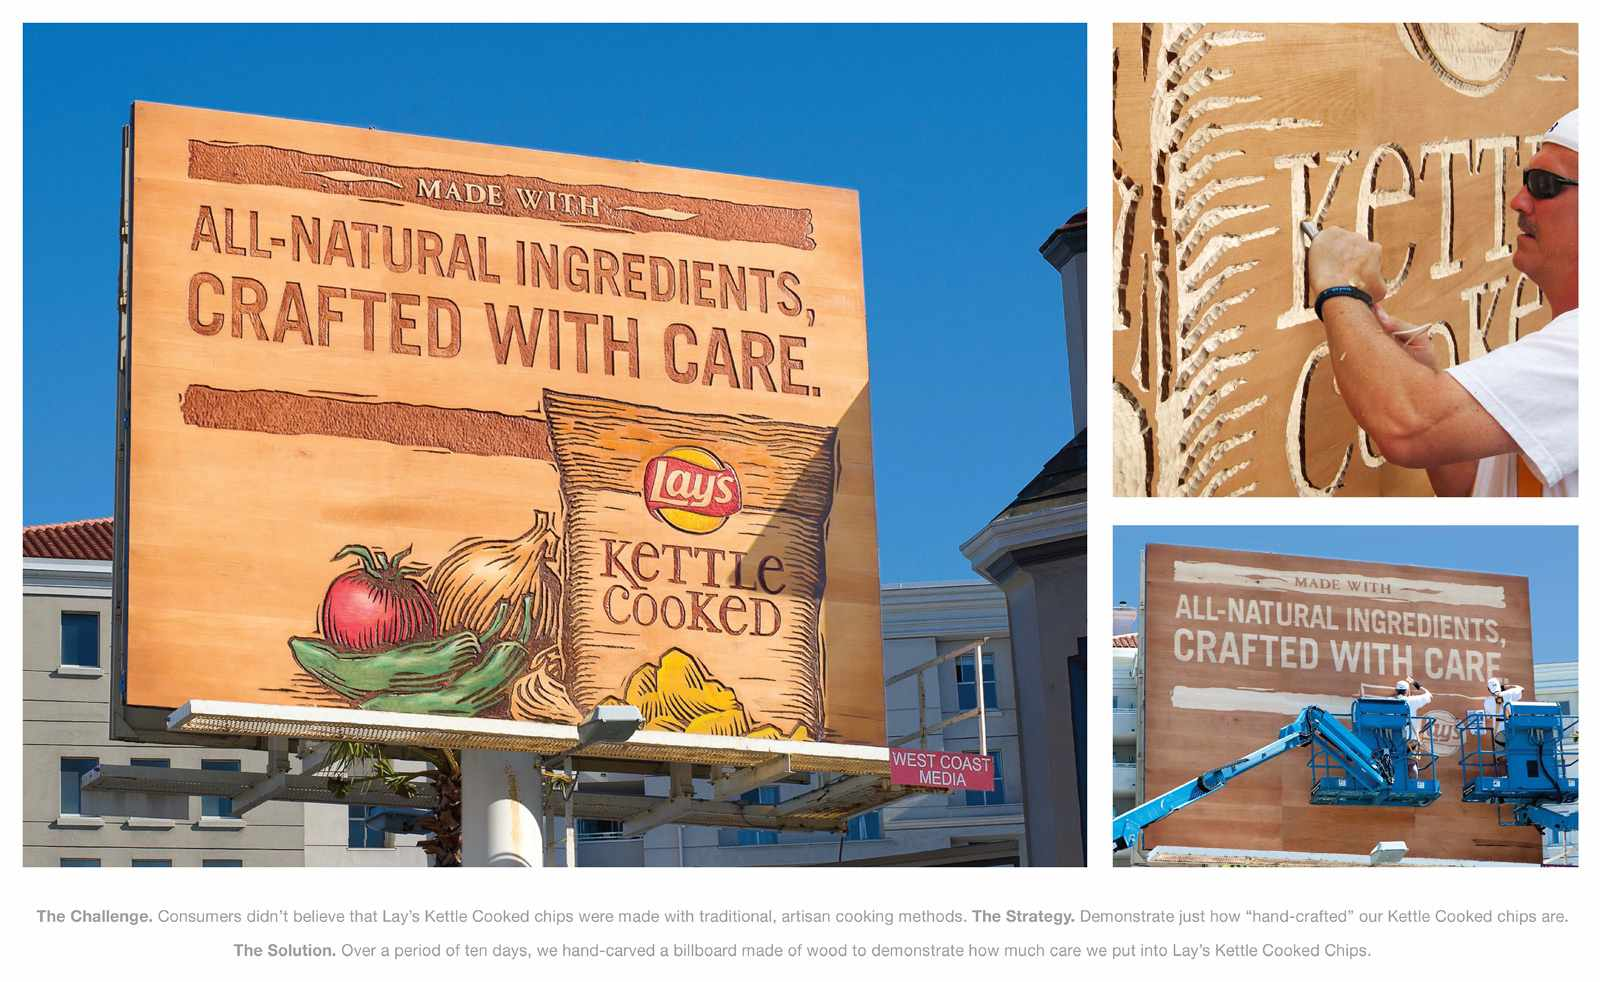 billboard-design-tips-and-examples-lays-kettle-cooked-outdoor